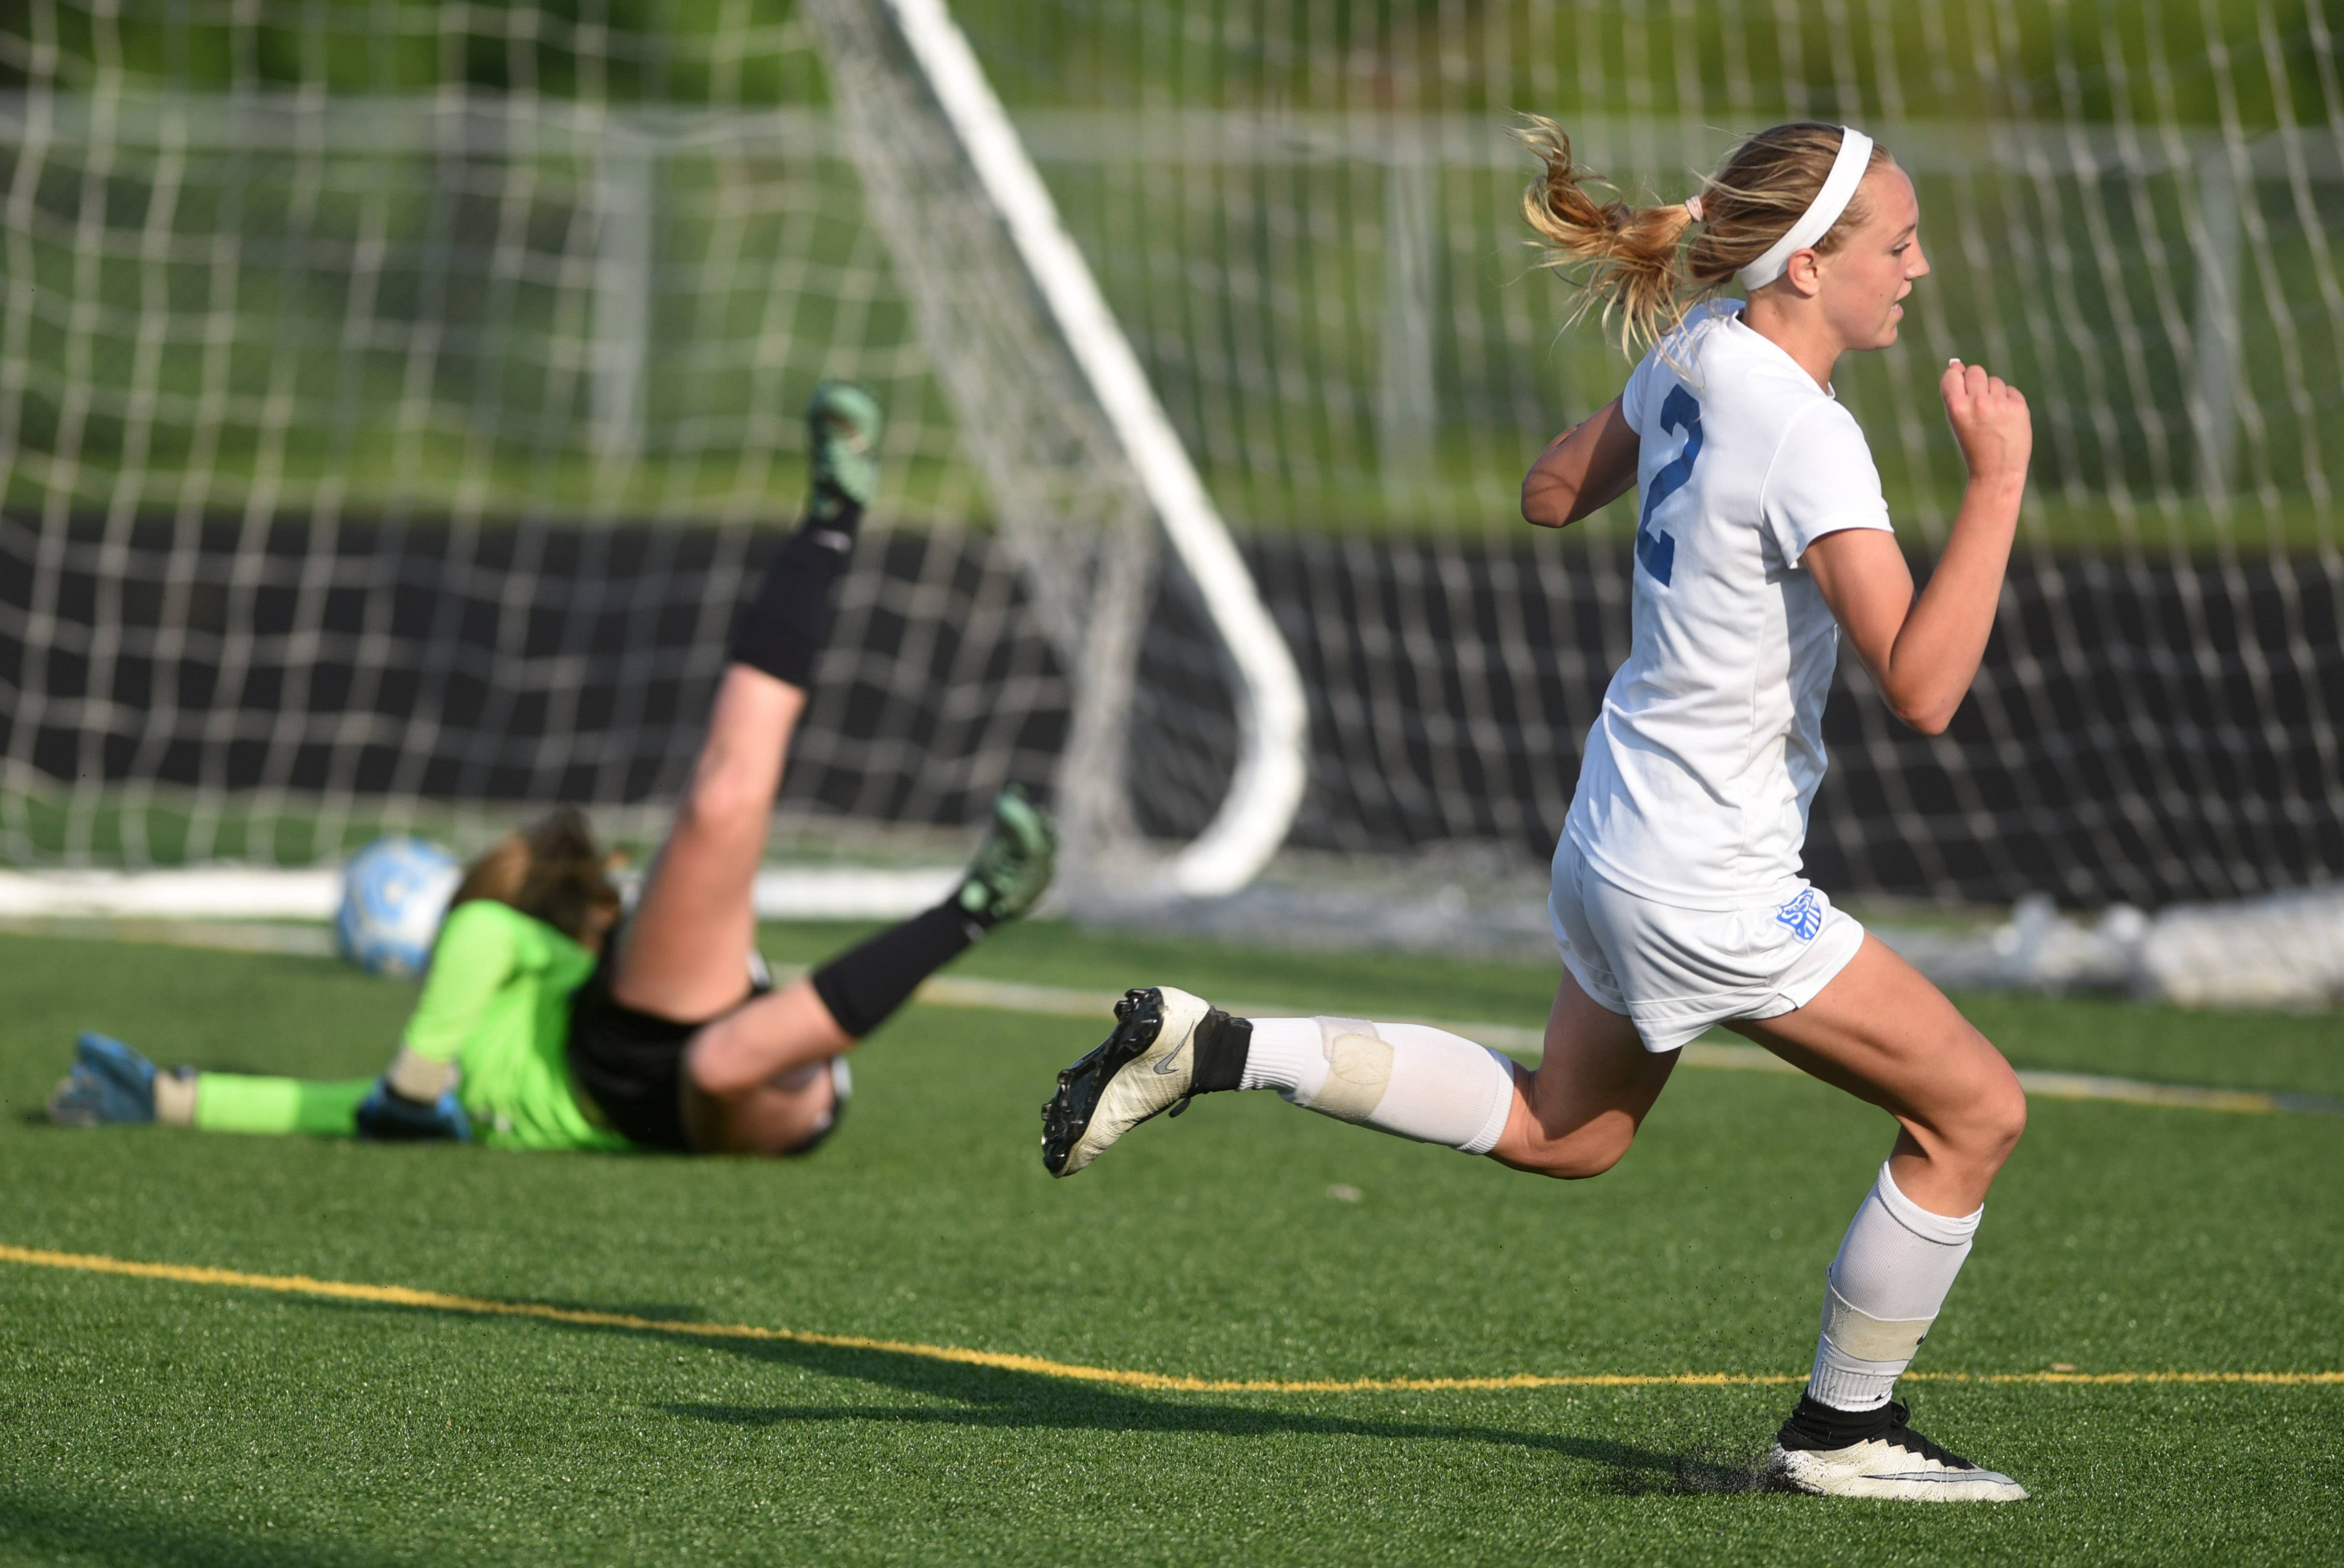 Girls soccer: St. Charles North escapes Bartlett in OT